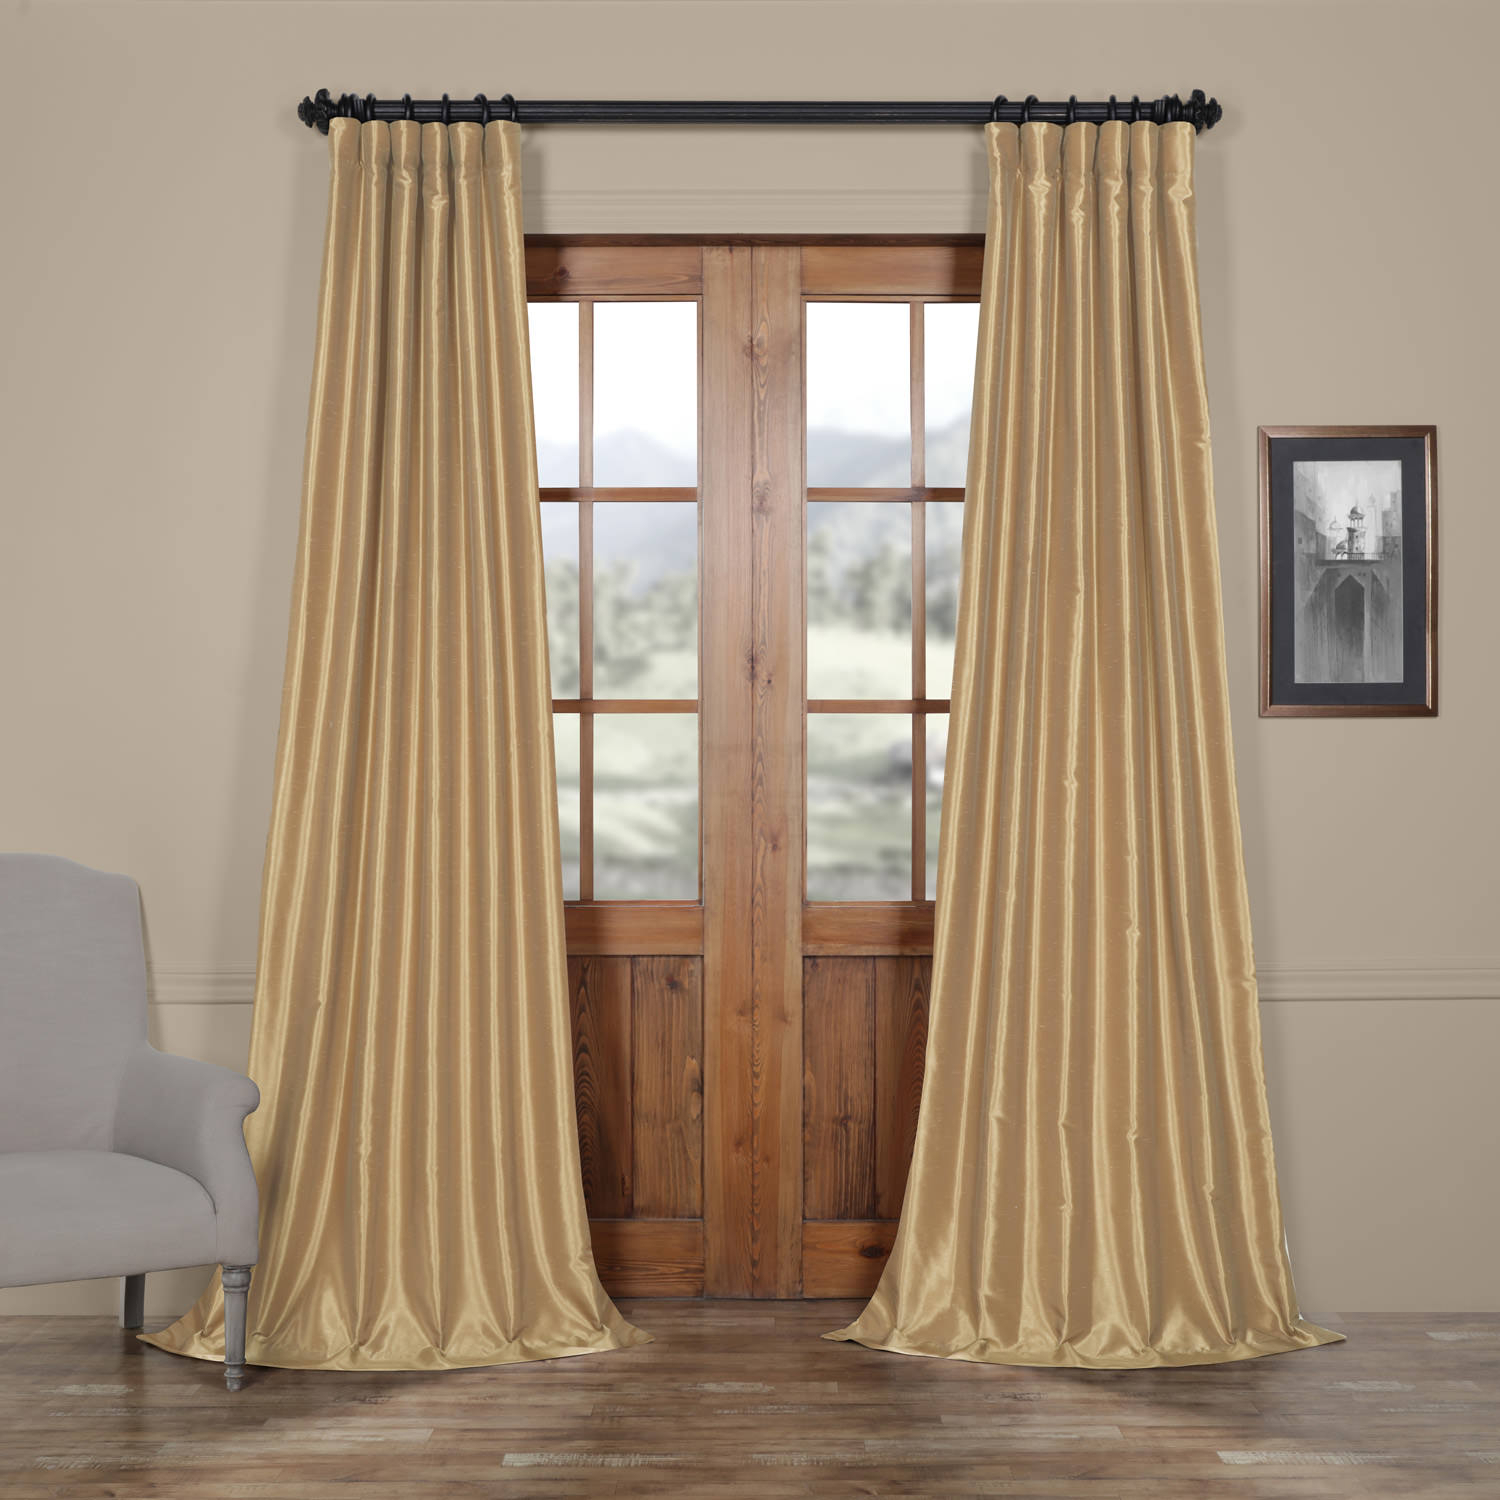 Almond Vintage Textured Faux Dupioni Silk Curtain Intended For Storm Grey Vintage Faux Textured Dupioni Single Silk Curtain Panels (View 1 of 30)